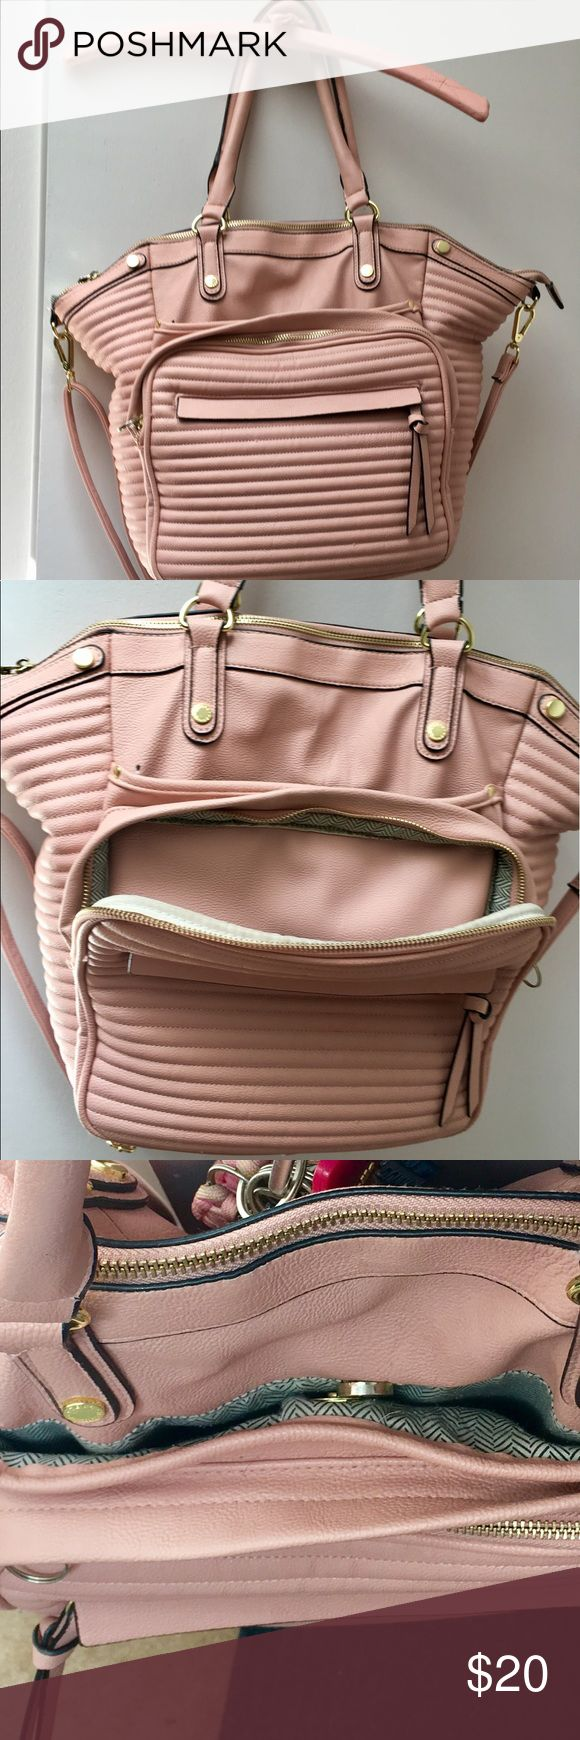 Steve Madden Pink Leather Large IPad bag purse You can fit so much in this awesome bag! I love this bag! Has a place for everything! For your smartphone, makeup, wallet, IPad or whatever brand, it keeps it very safe! There's a little tack that popped out and where I live there is not one shoe repair shop so I couldn't bring it in to get a brad put back in. Shouldn't cost a thing to get done. I live in a rural area. But there's so much life to this amazing bag! I only used it for about a…